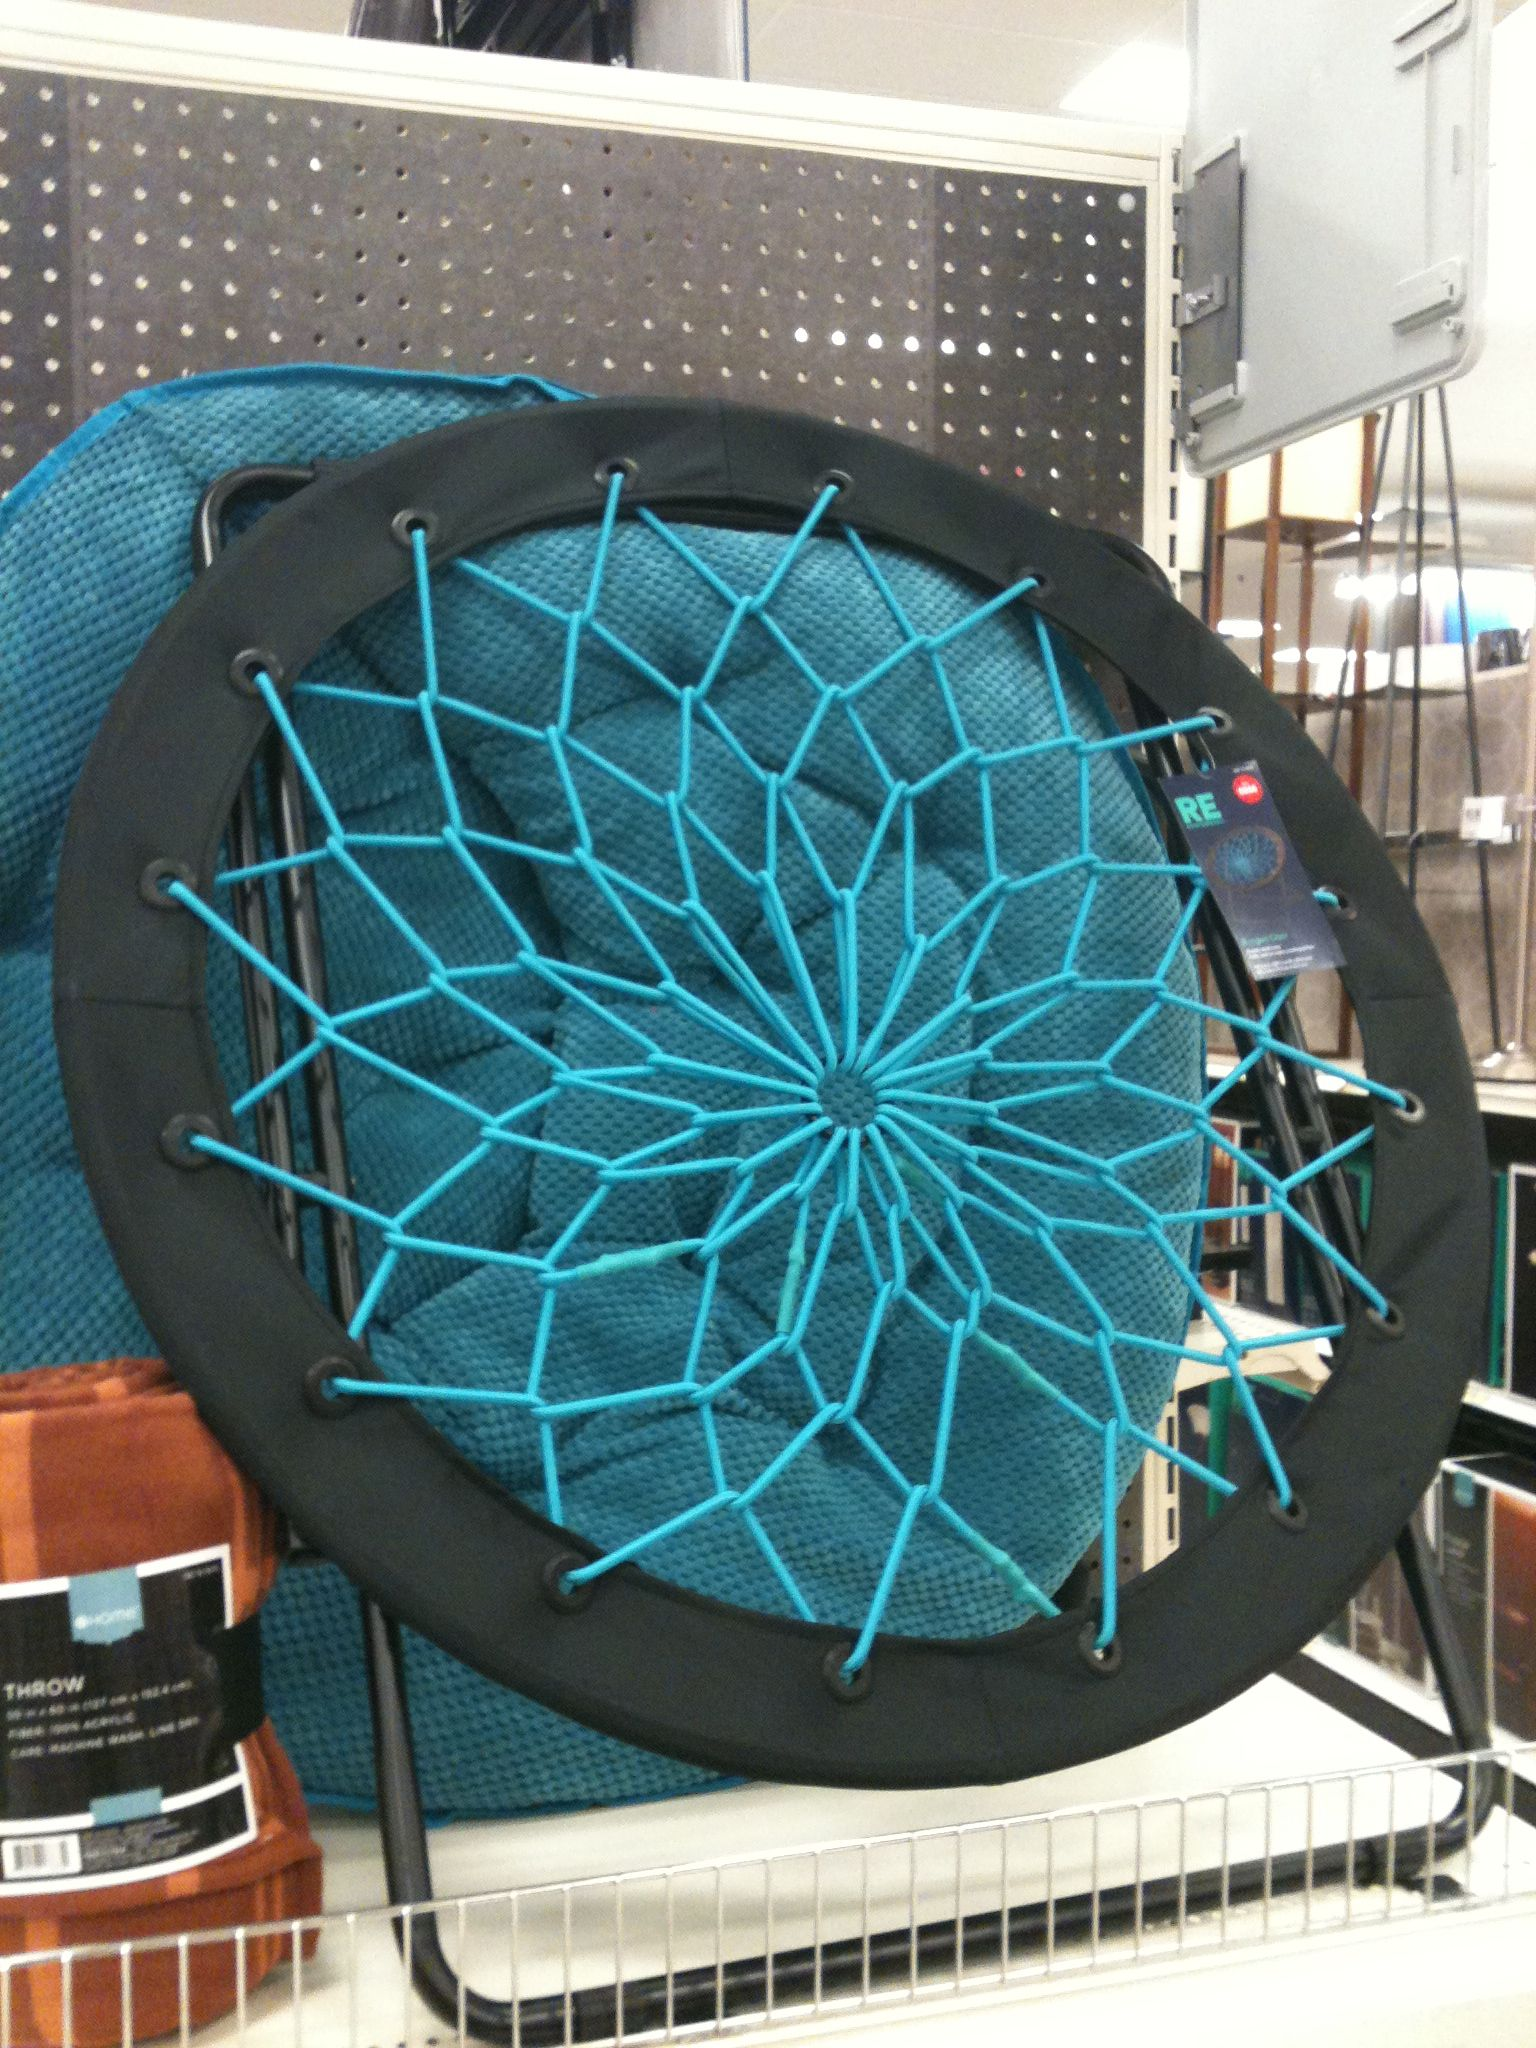 Target Bungee Chairs Desk For Wooden Floors Cool At Round Chair In Teal